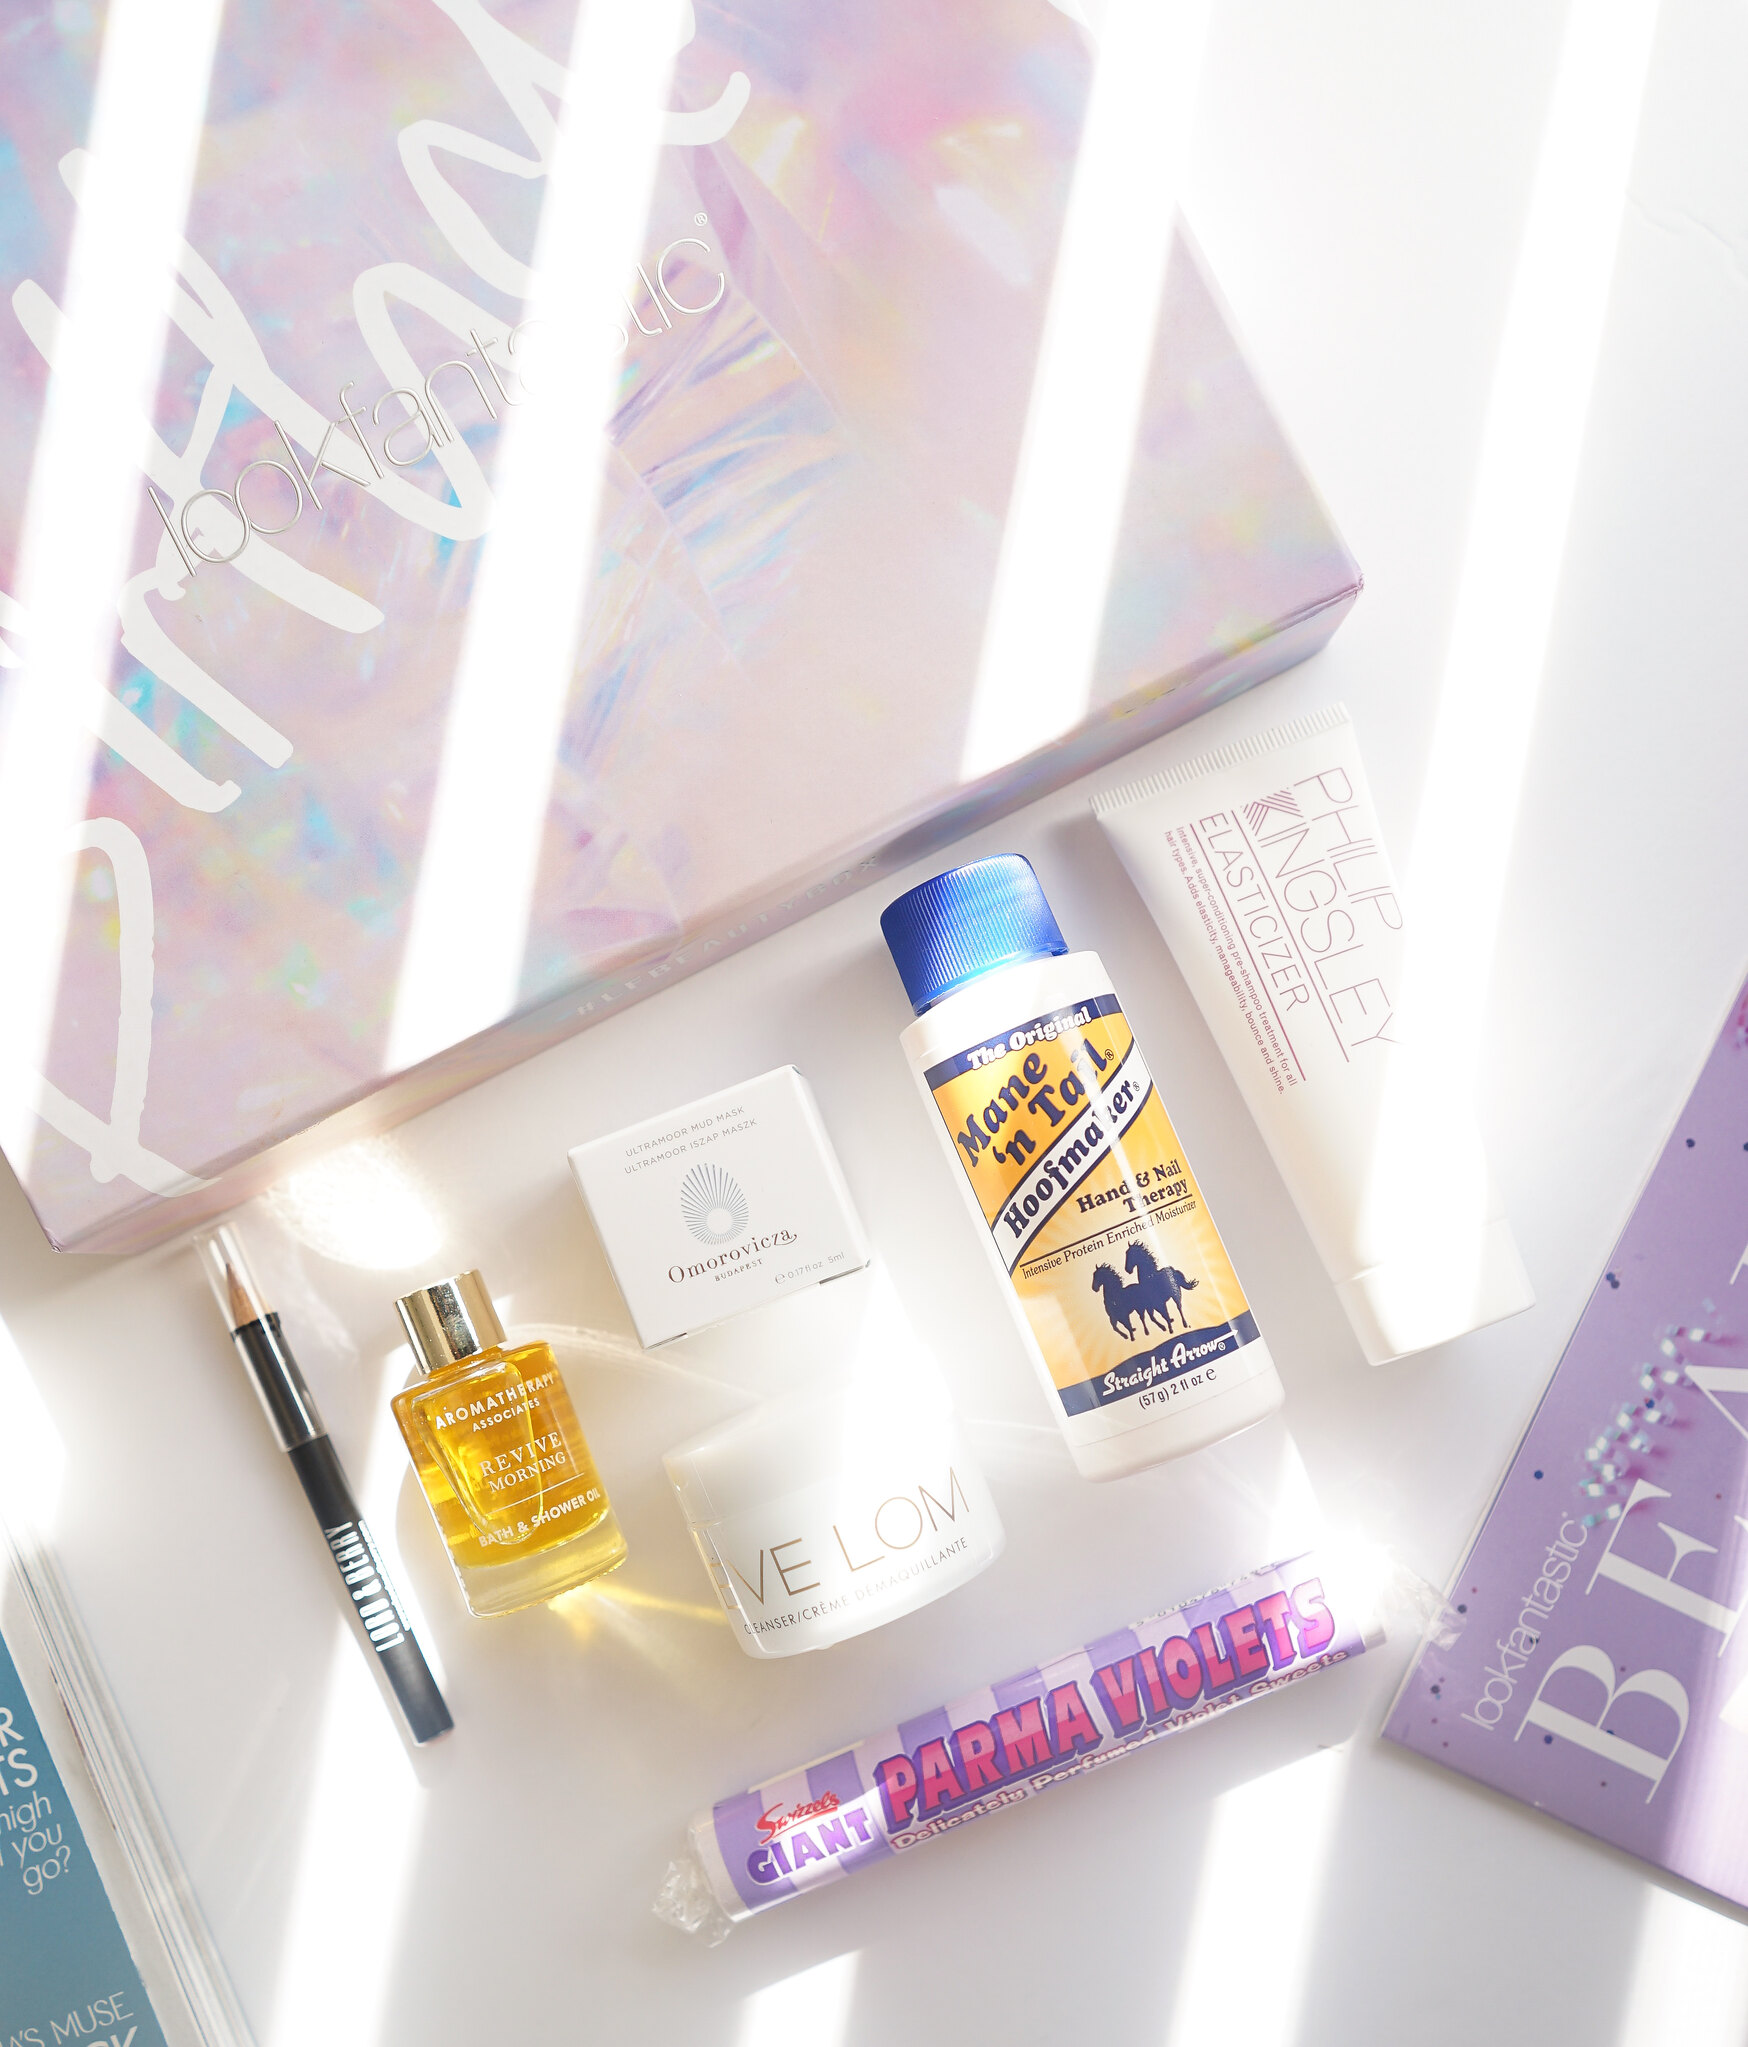 lookfantastic, beauty box, omorovicza, eve mom, Philip Kingsley, luxury beauty, BBLOGGER,, mom blog, mommy blogger